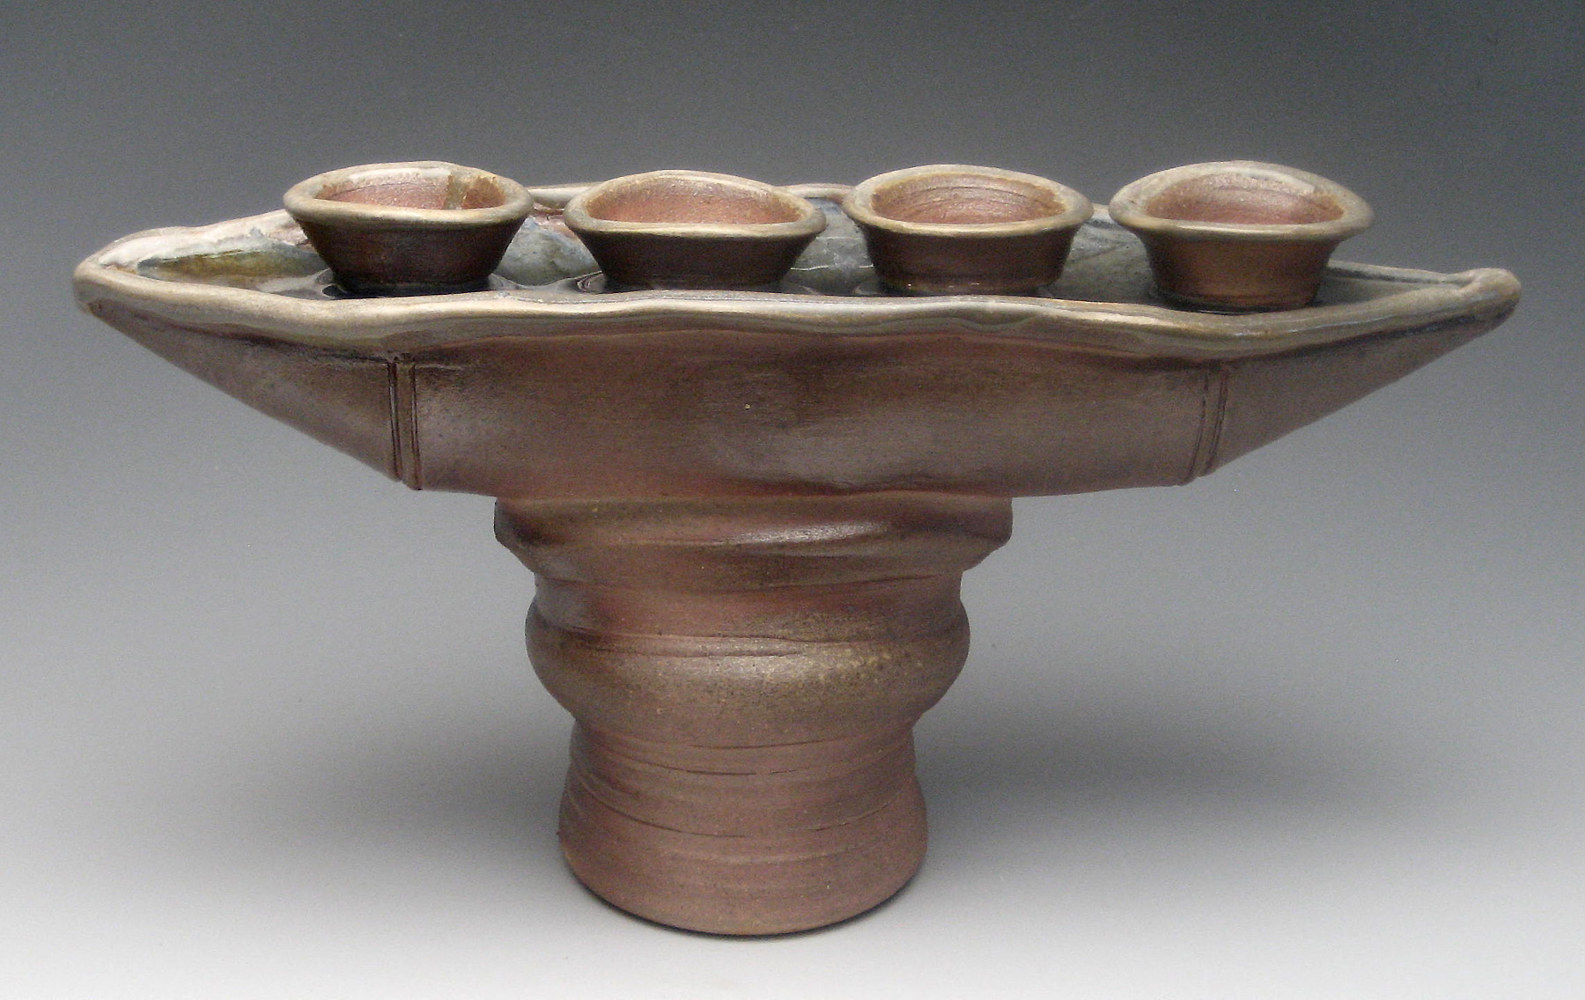 Wood fired Candle Holder by Sharon V Smith